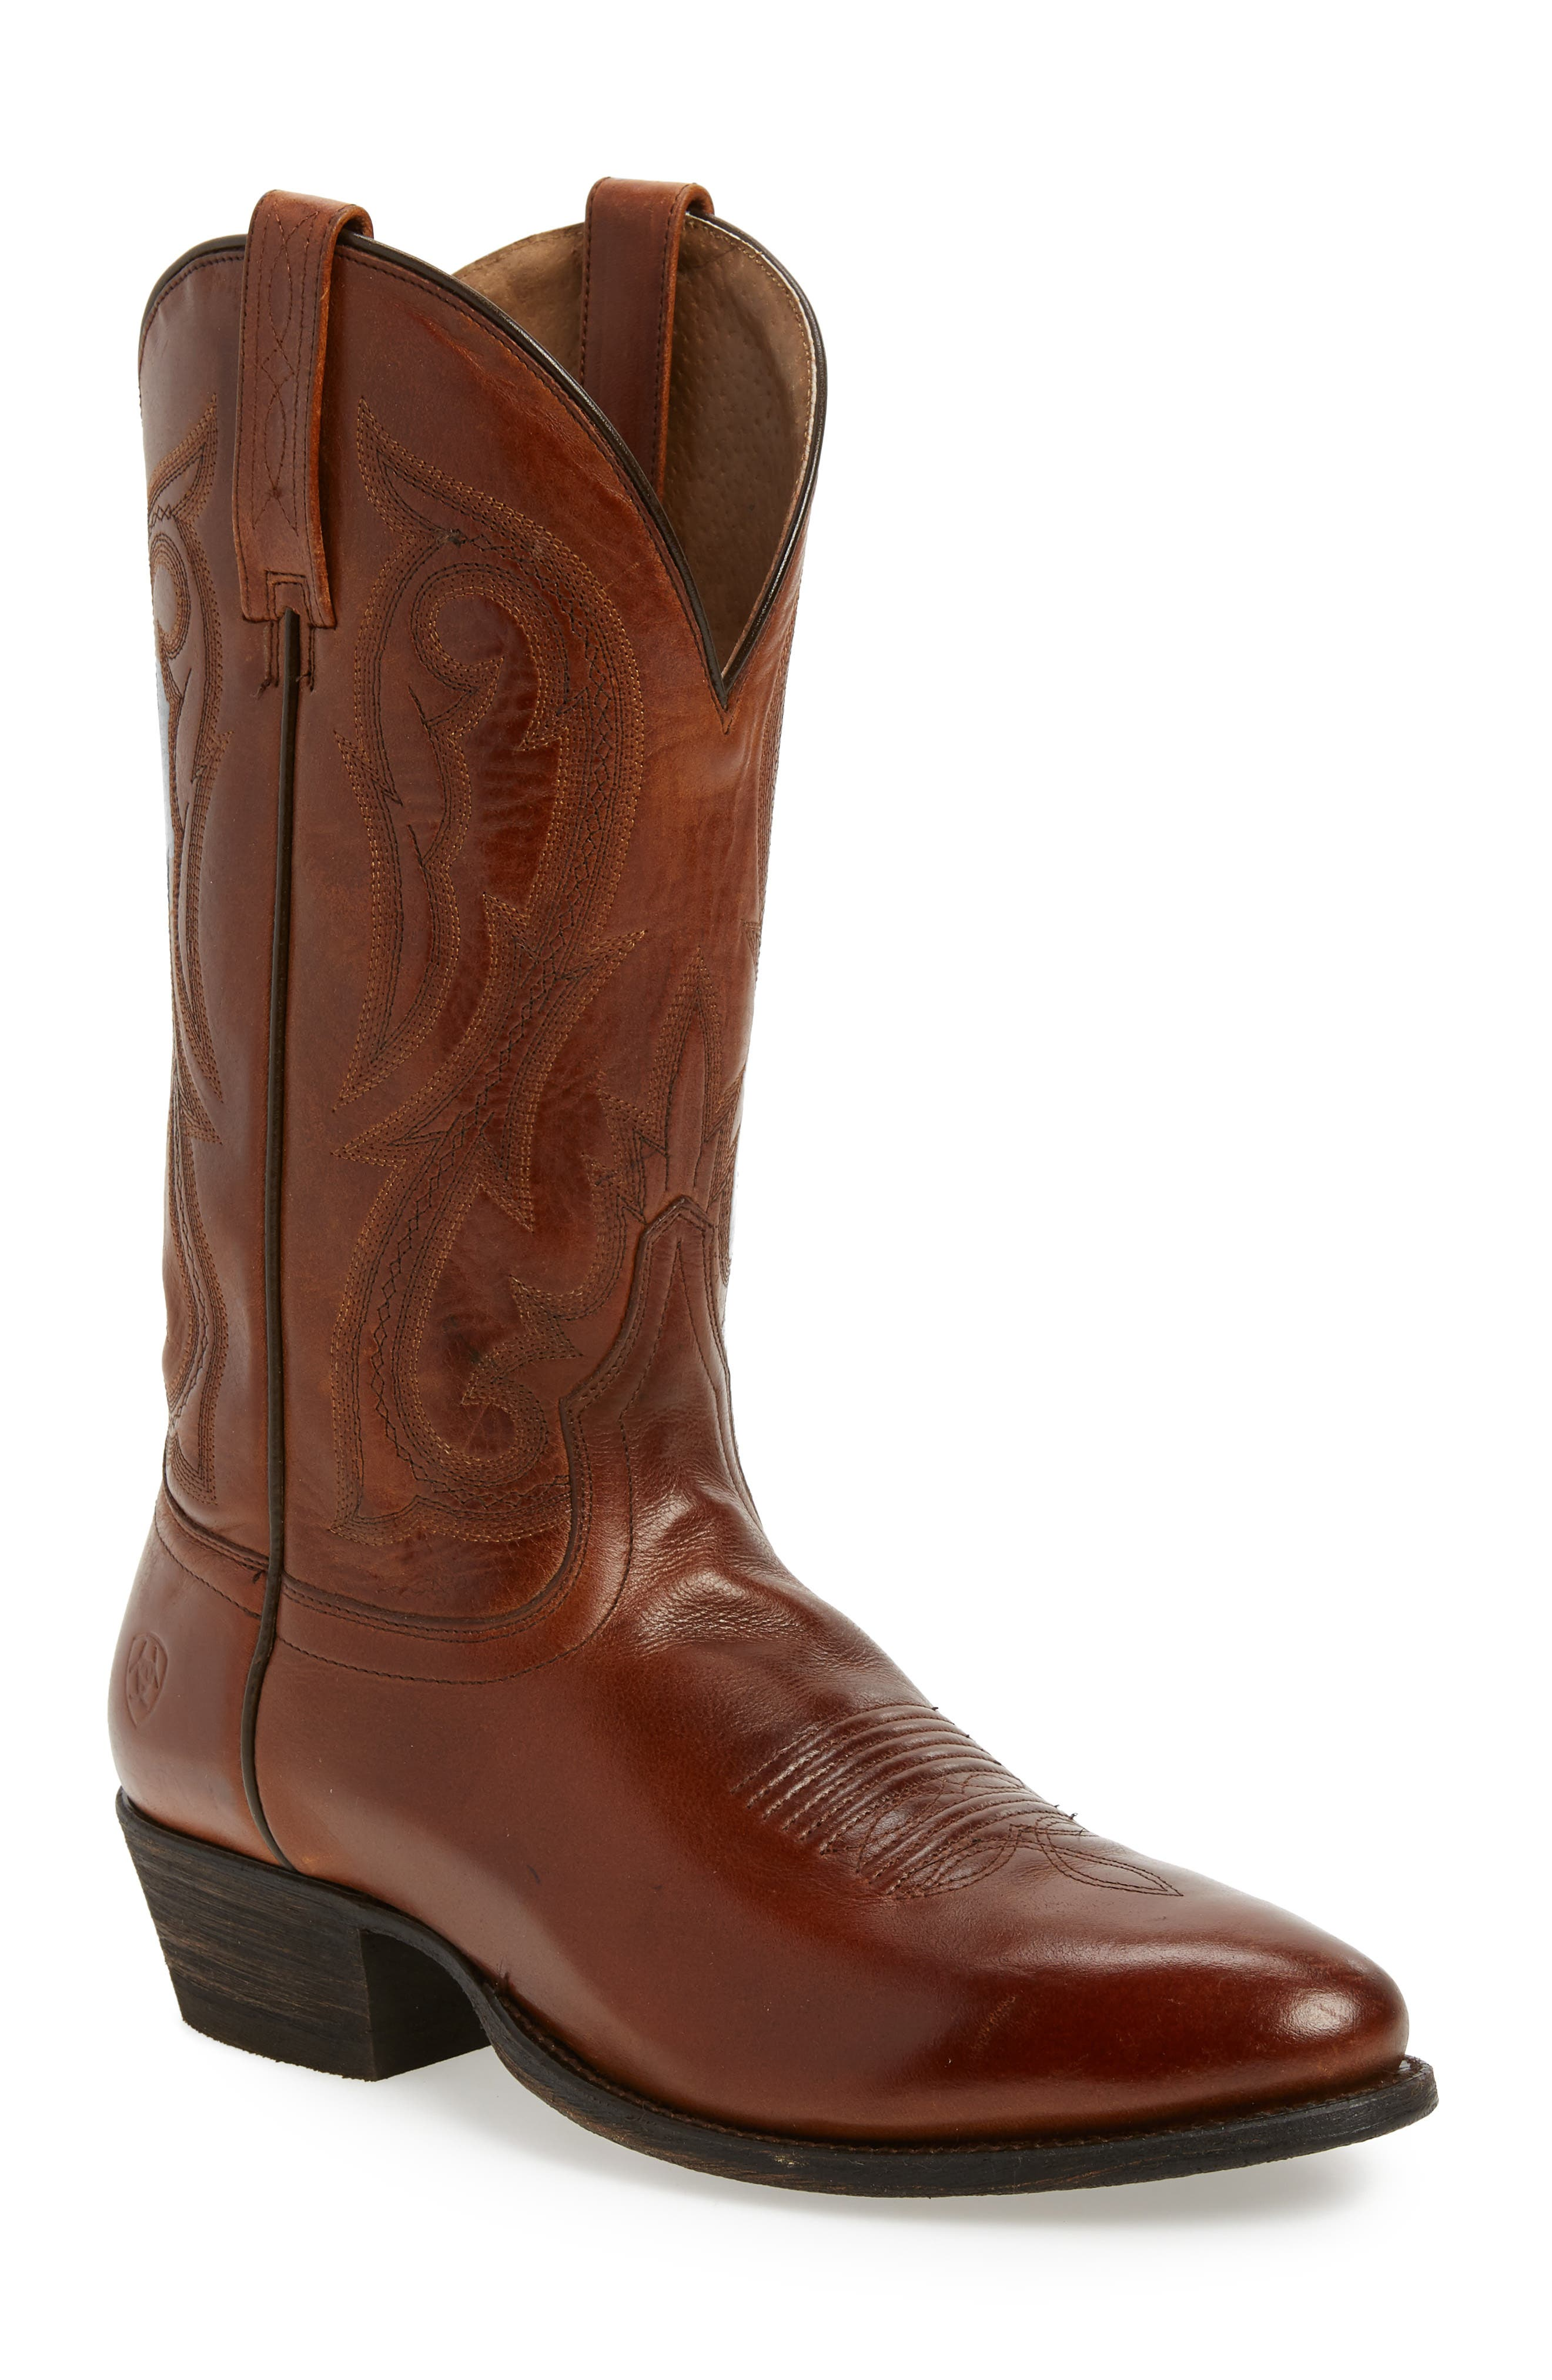 Circuit Tall Cowboy Boot,                         Main,                         color, SPRUCED COGNAC LEATHER